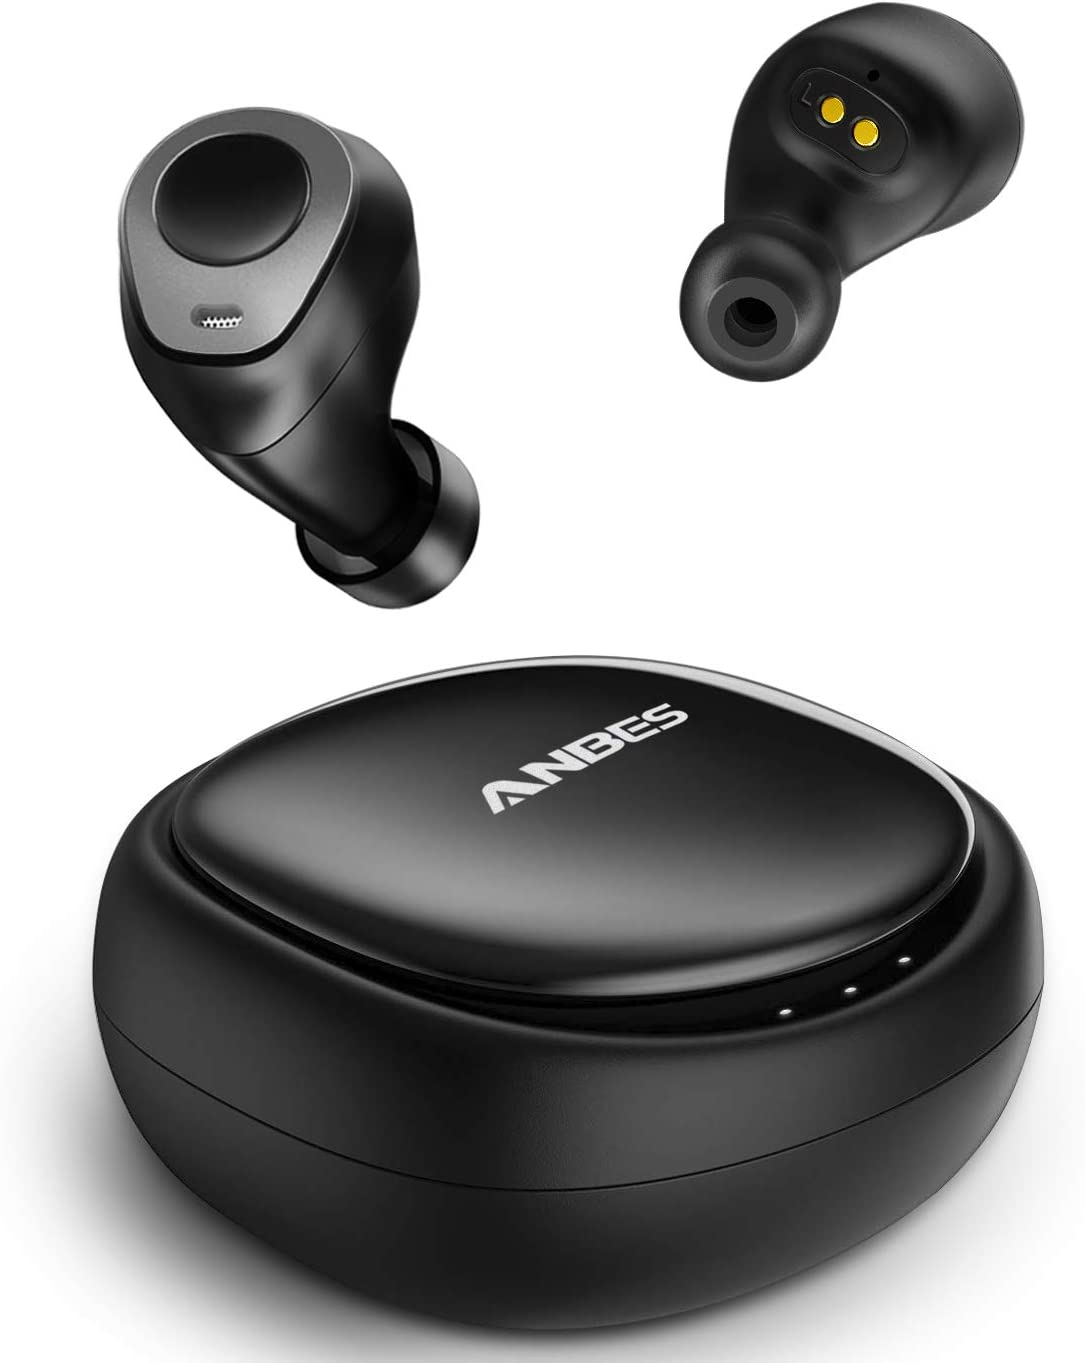 black Anbes Wireless Earbuds floating above their carrying case